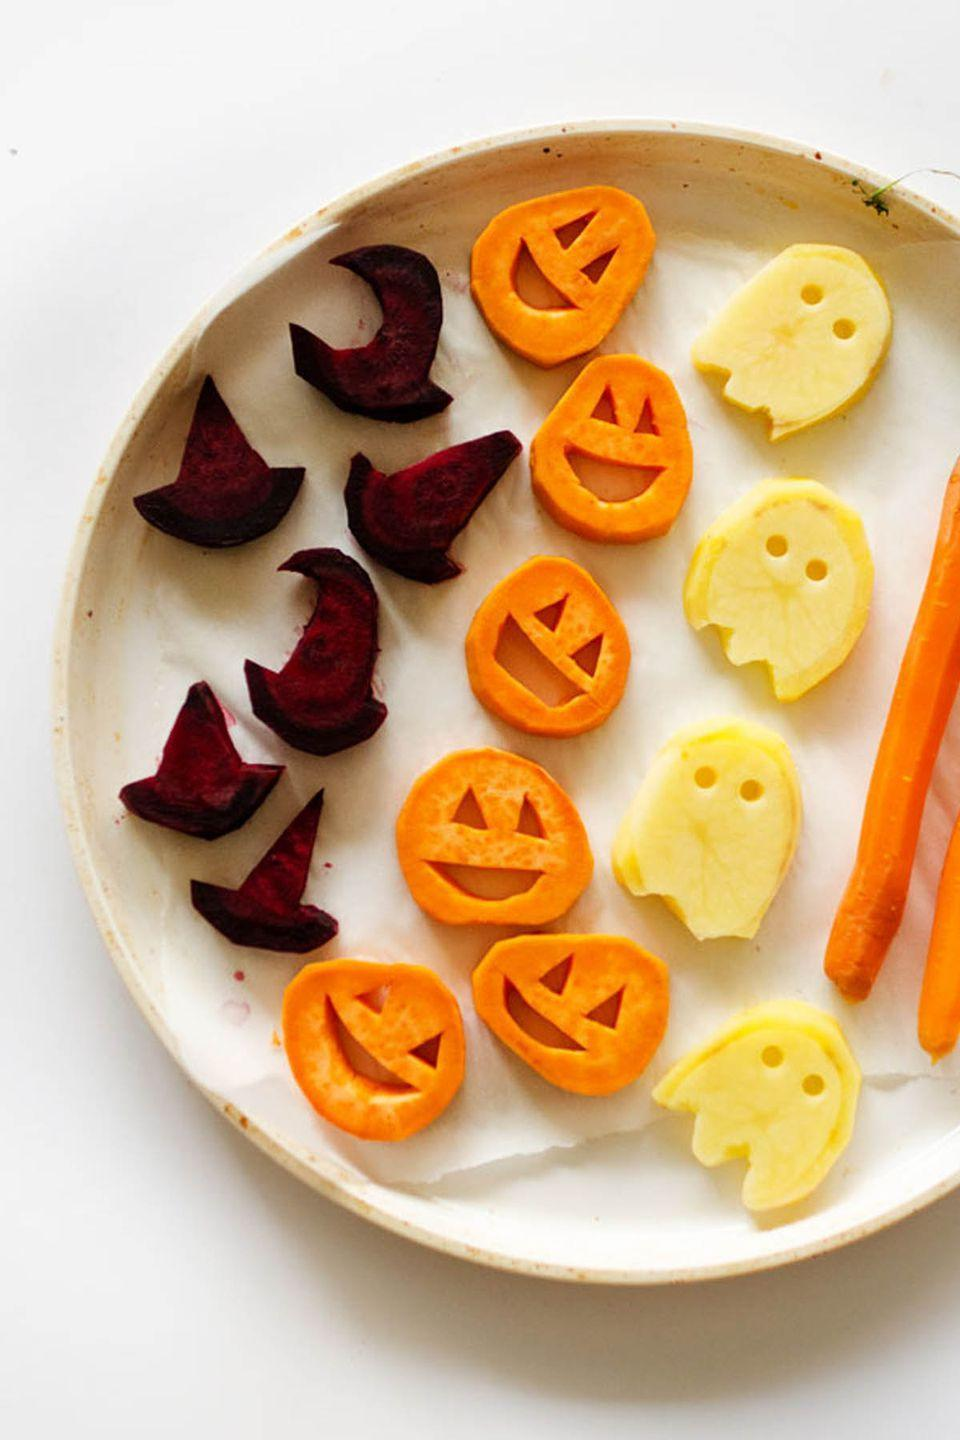 "<p>Even the pickiest of eaters won't be able to resist a bite of these <a href=""https://www.womansday.com/food-recipes/food-drinks/g2500/halloween-snacks/"" rel=""nofollow noopener"" target=""_blank"" data-ylk=""slk:super-cute snacks"" class=""link rapid-noclick-resp"">super-cute snacks</a>. <br></p><p><strong>Get the recipe at <a href=""http://www.liveeatlearn.com/halloween-roasted-vegetables/"" rel=""nofollow noopener"" target=""_blank"" data-ylk=""slk:Live Eat Learn"" class=""link rapid-noclick-resp"">Live Eat Learn</a>.</strong></p>"